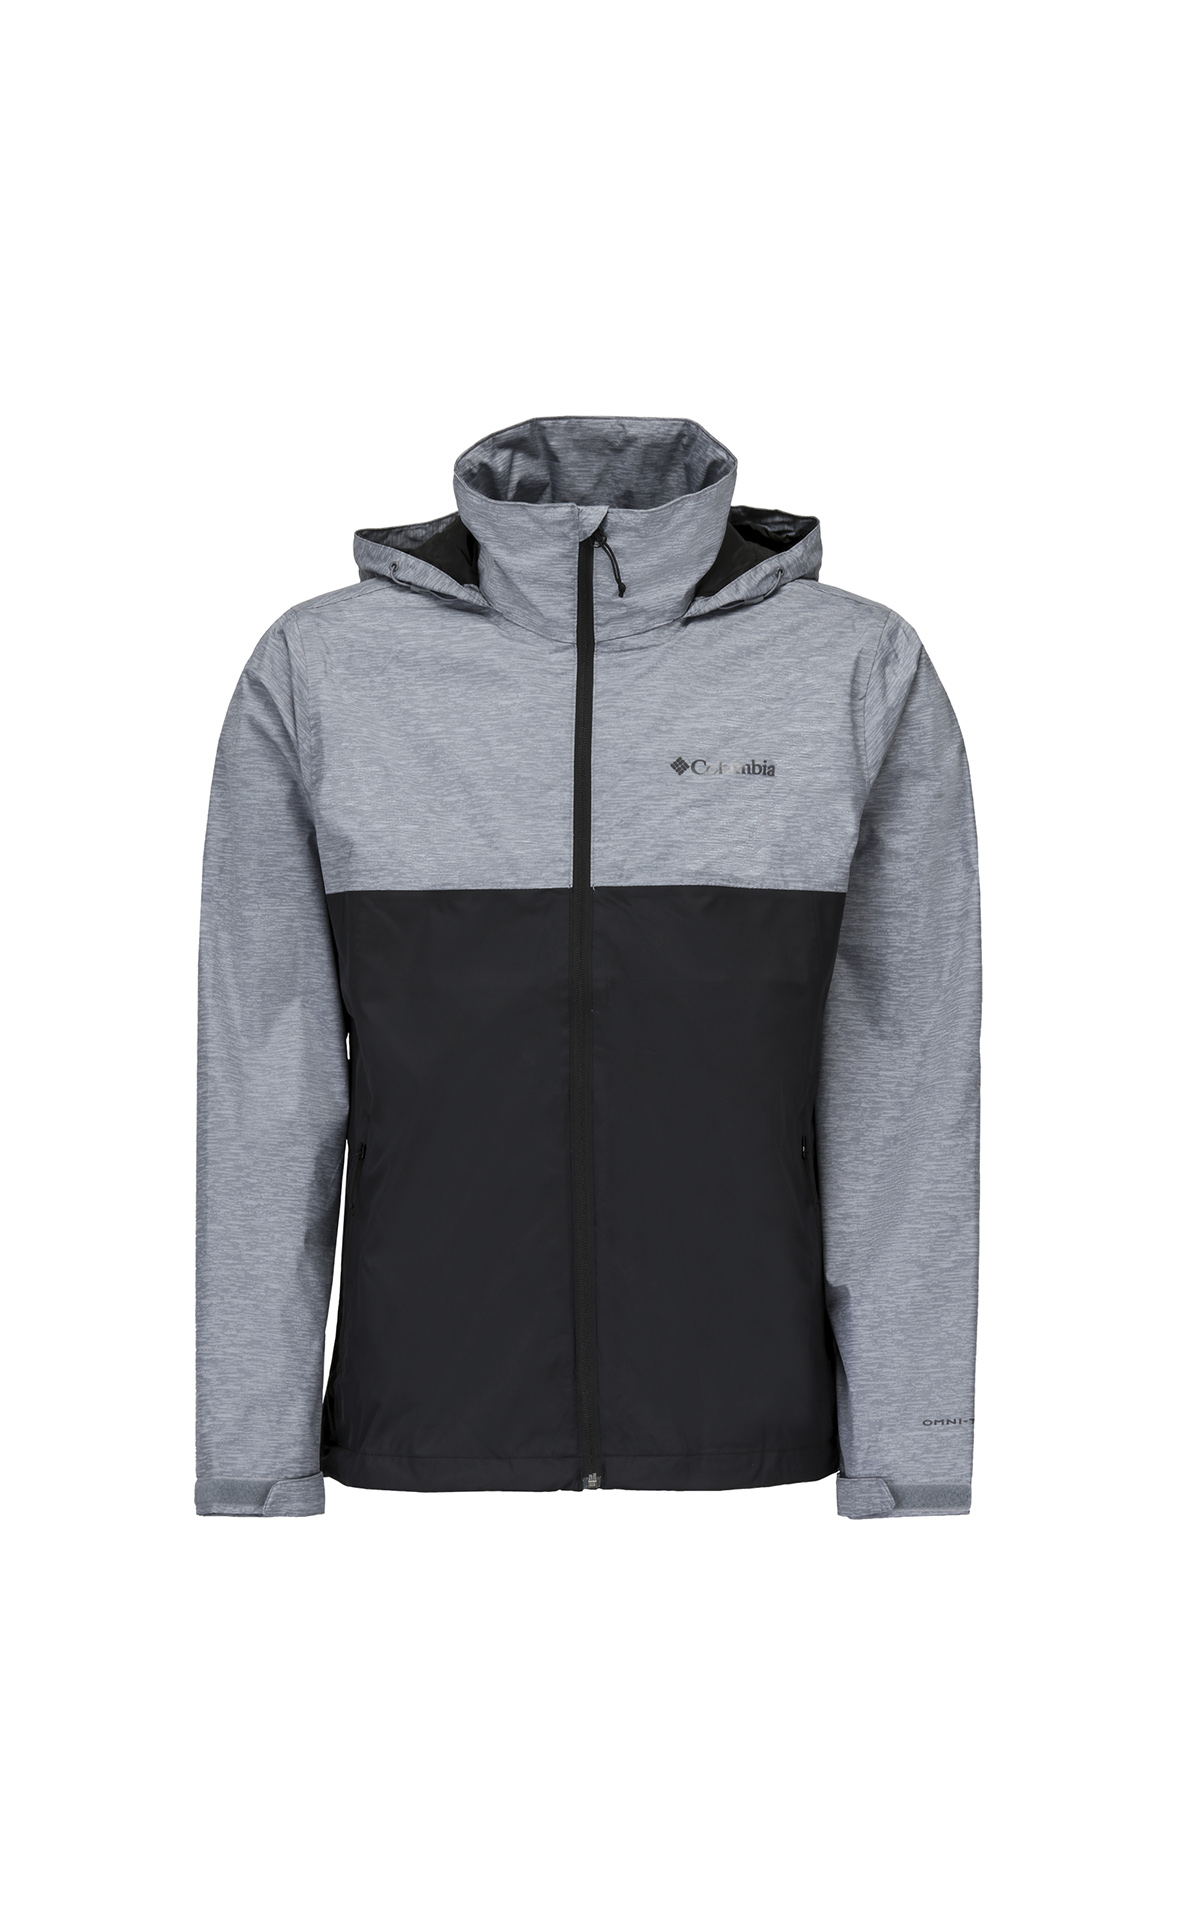 Grey and black jacket Columbia